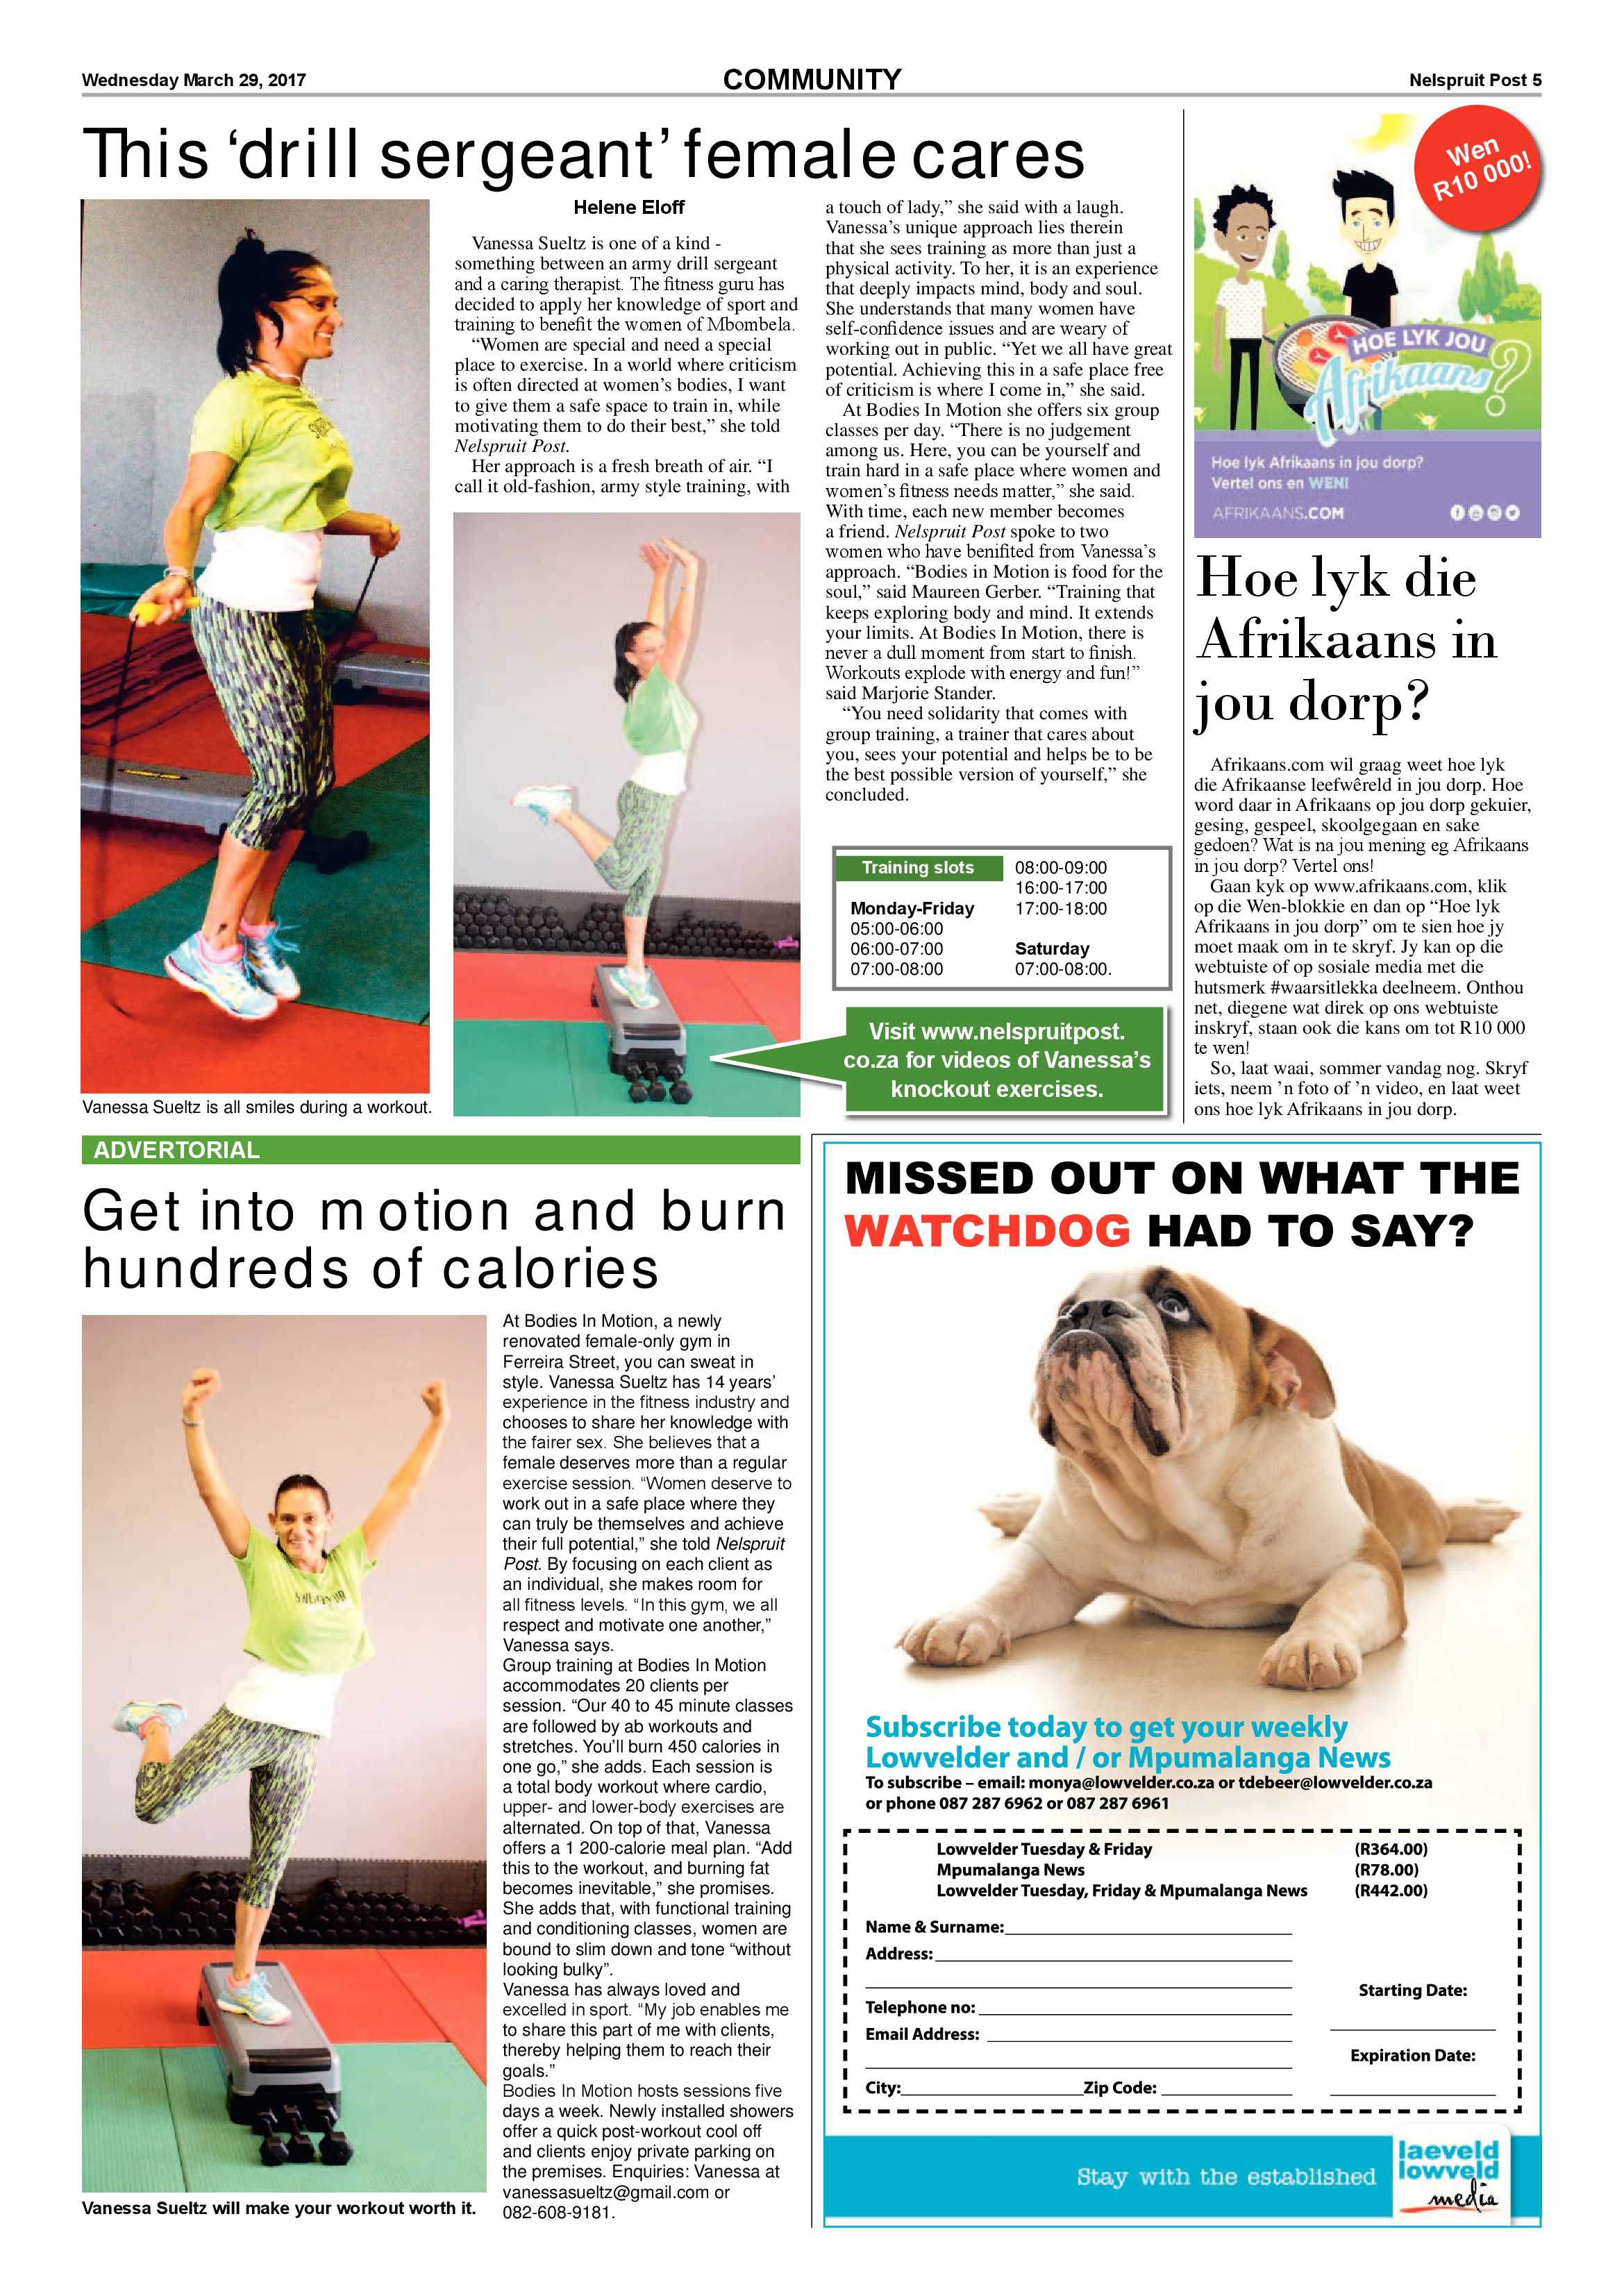 Posts for march page 7 - Nelspruit Post 29 March 2017 Epapers Page 5